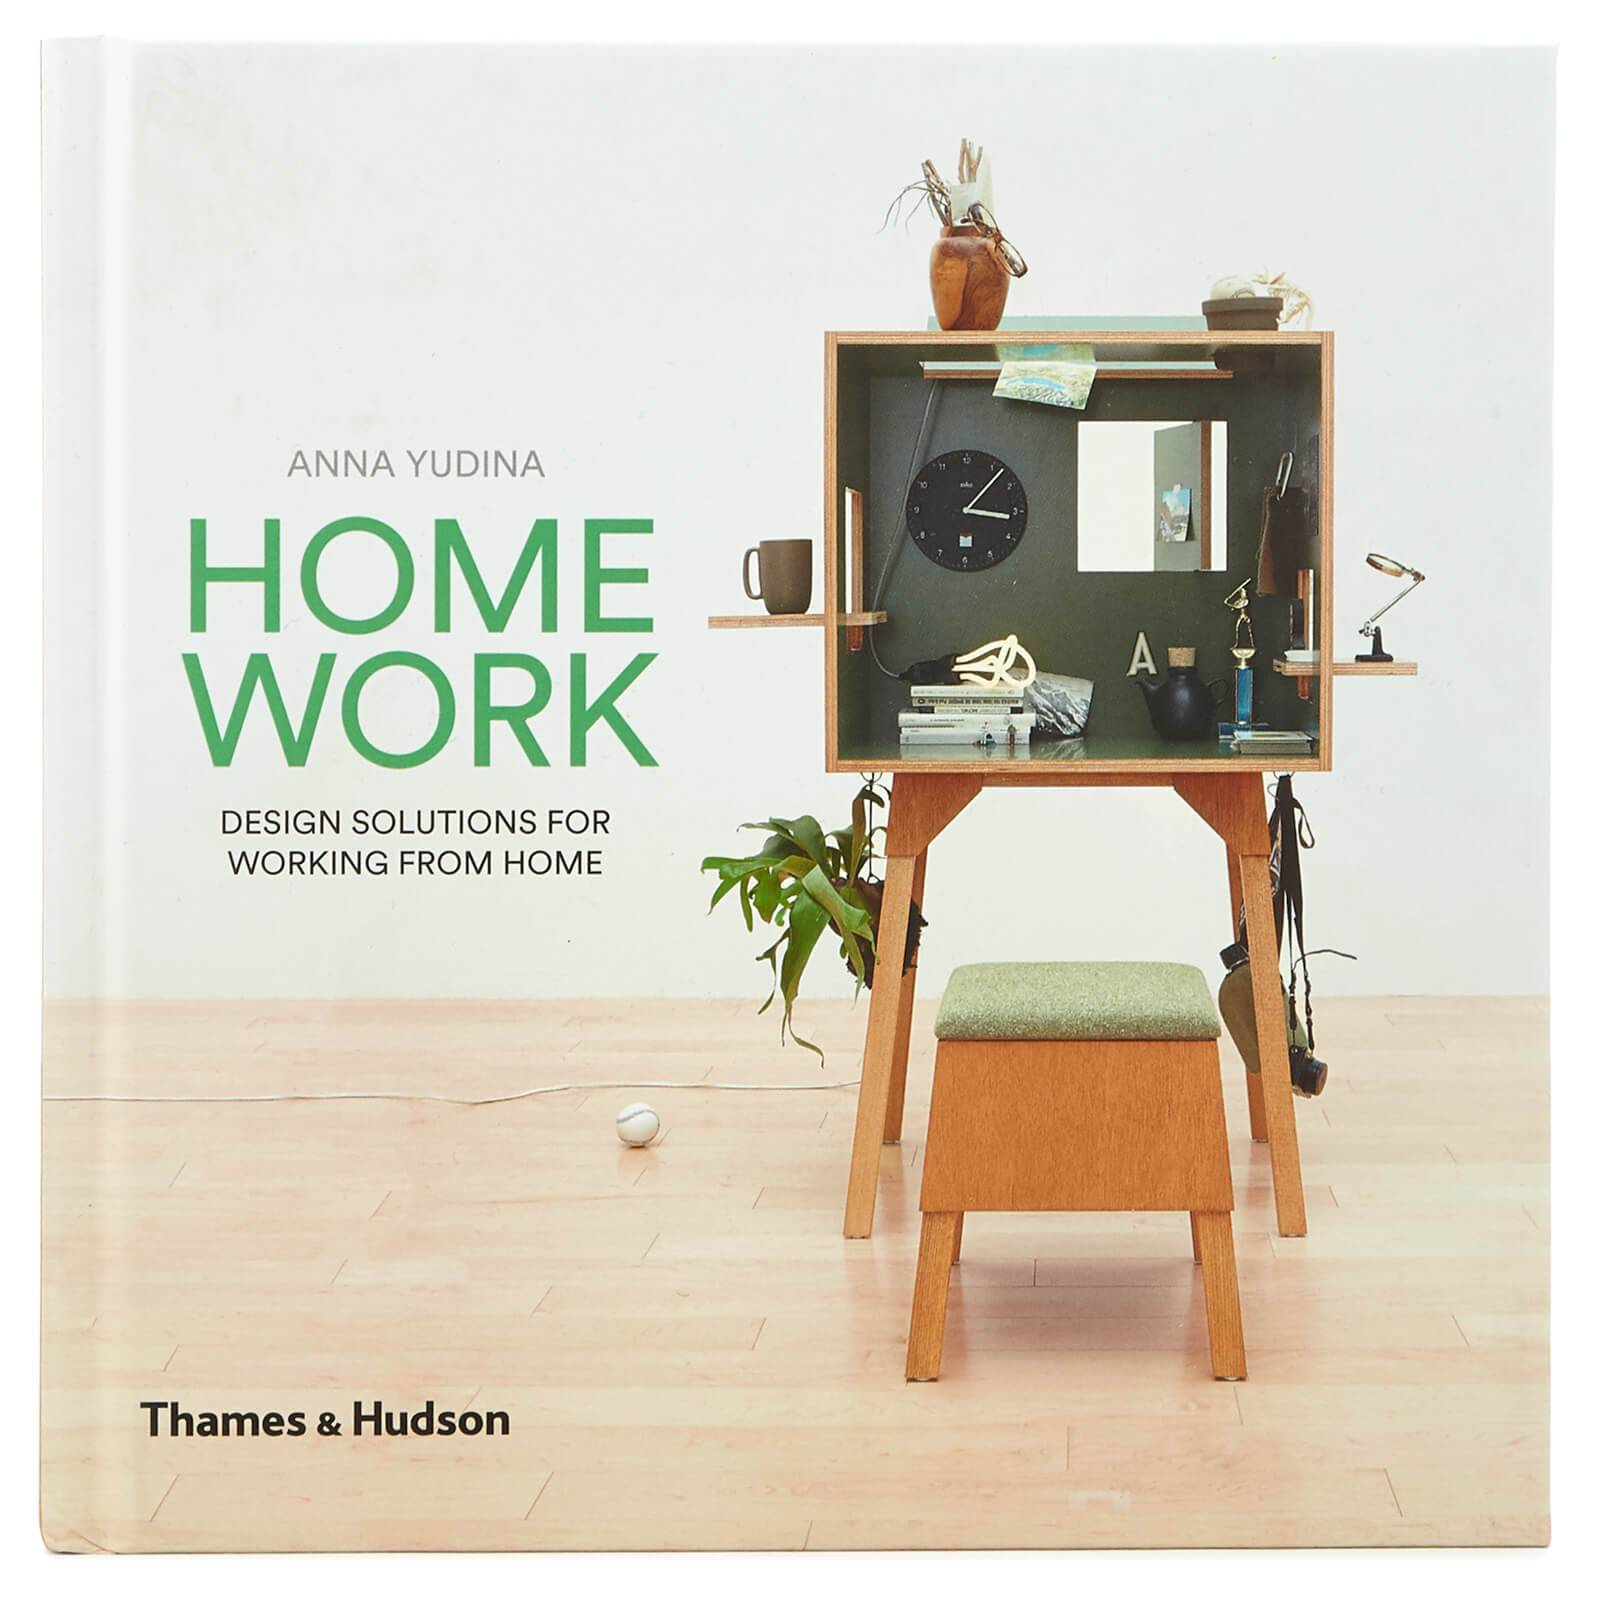 Thames and Hudson Ltd: Homework - Design Solutions for Working From Home